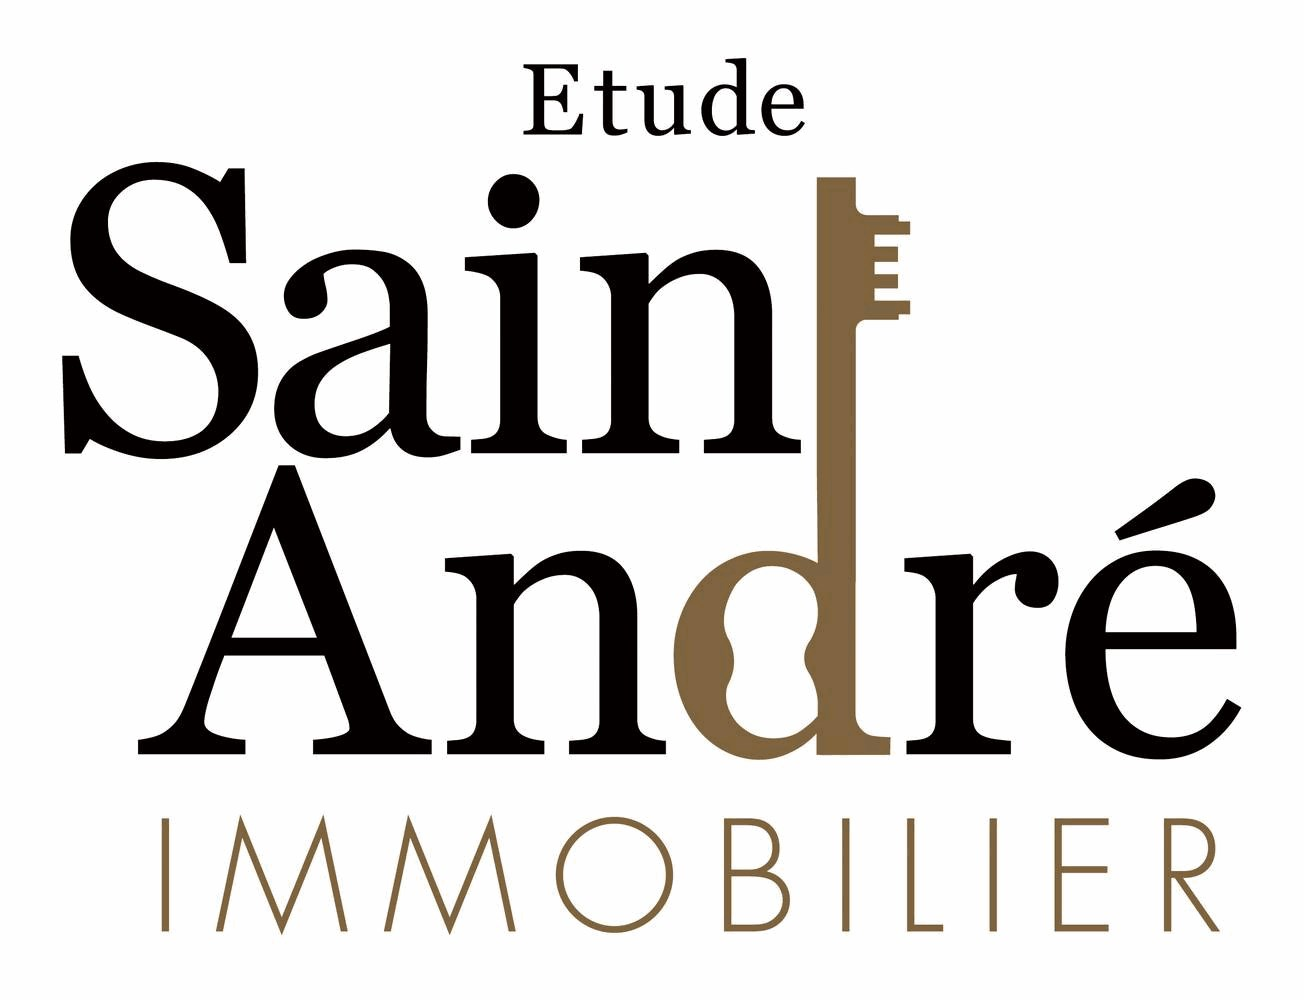 Real estate agency ETUDE SAINT ANDRE IMMOBILIER in Angouleme